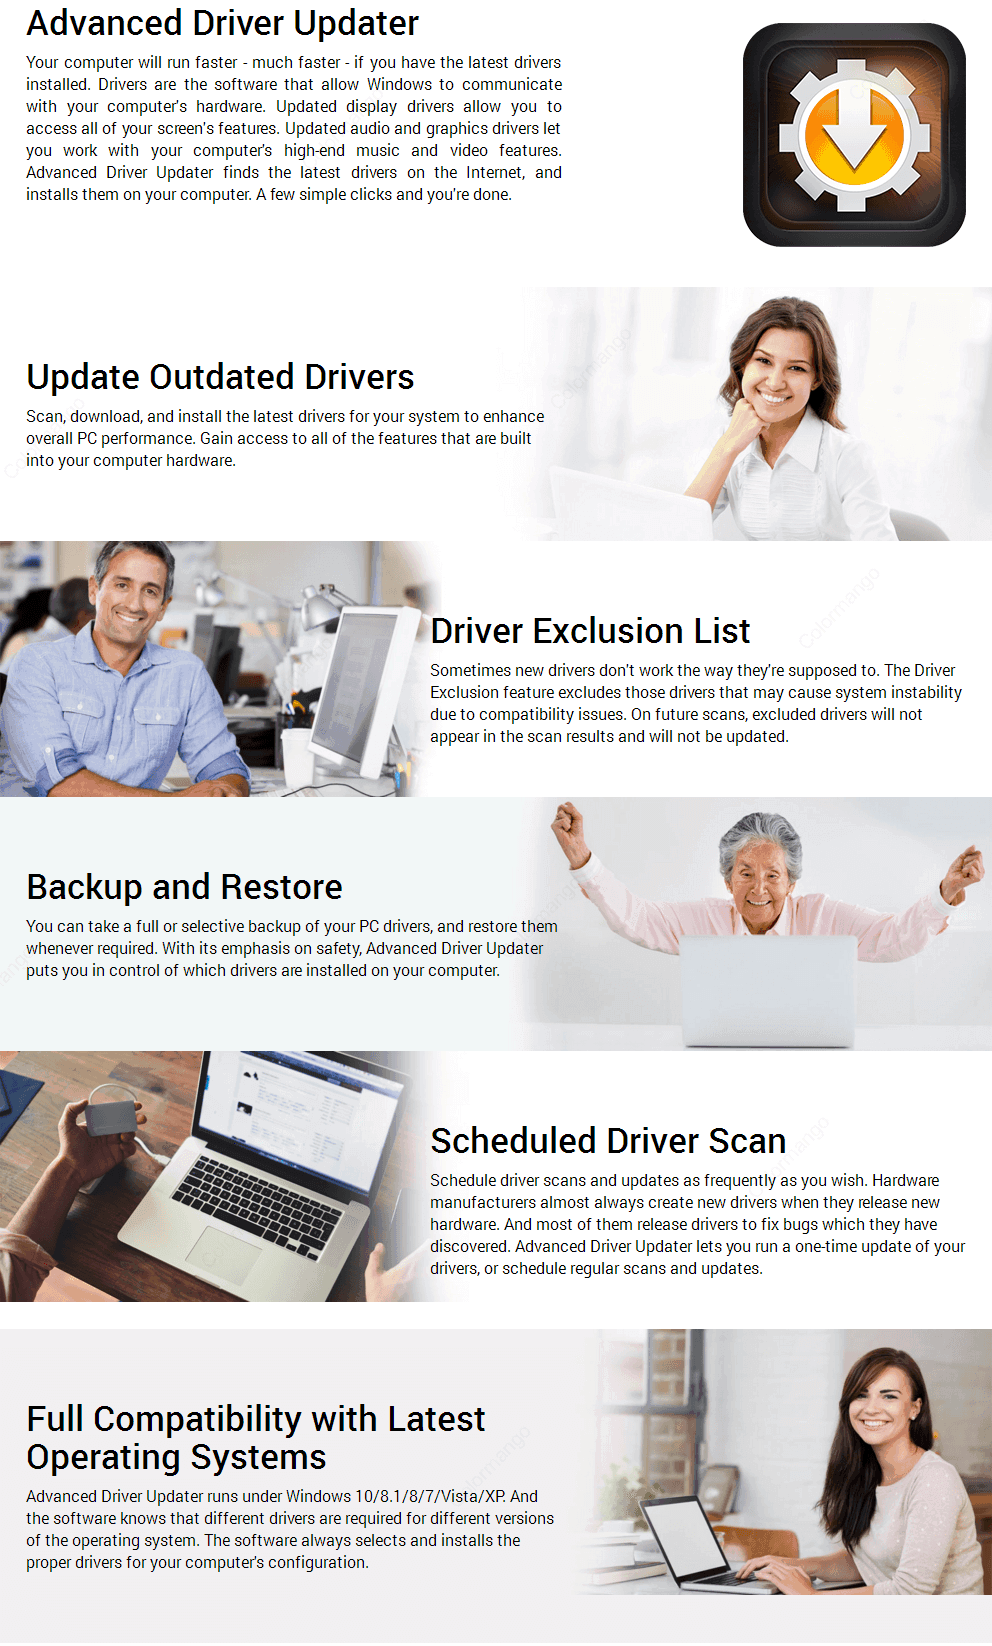 Advanced Driver Updater key Features